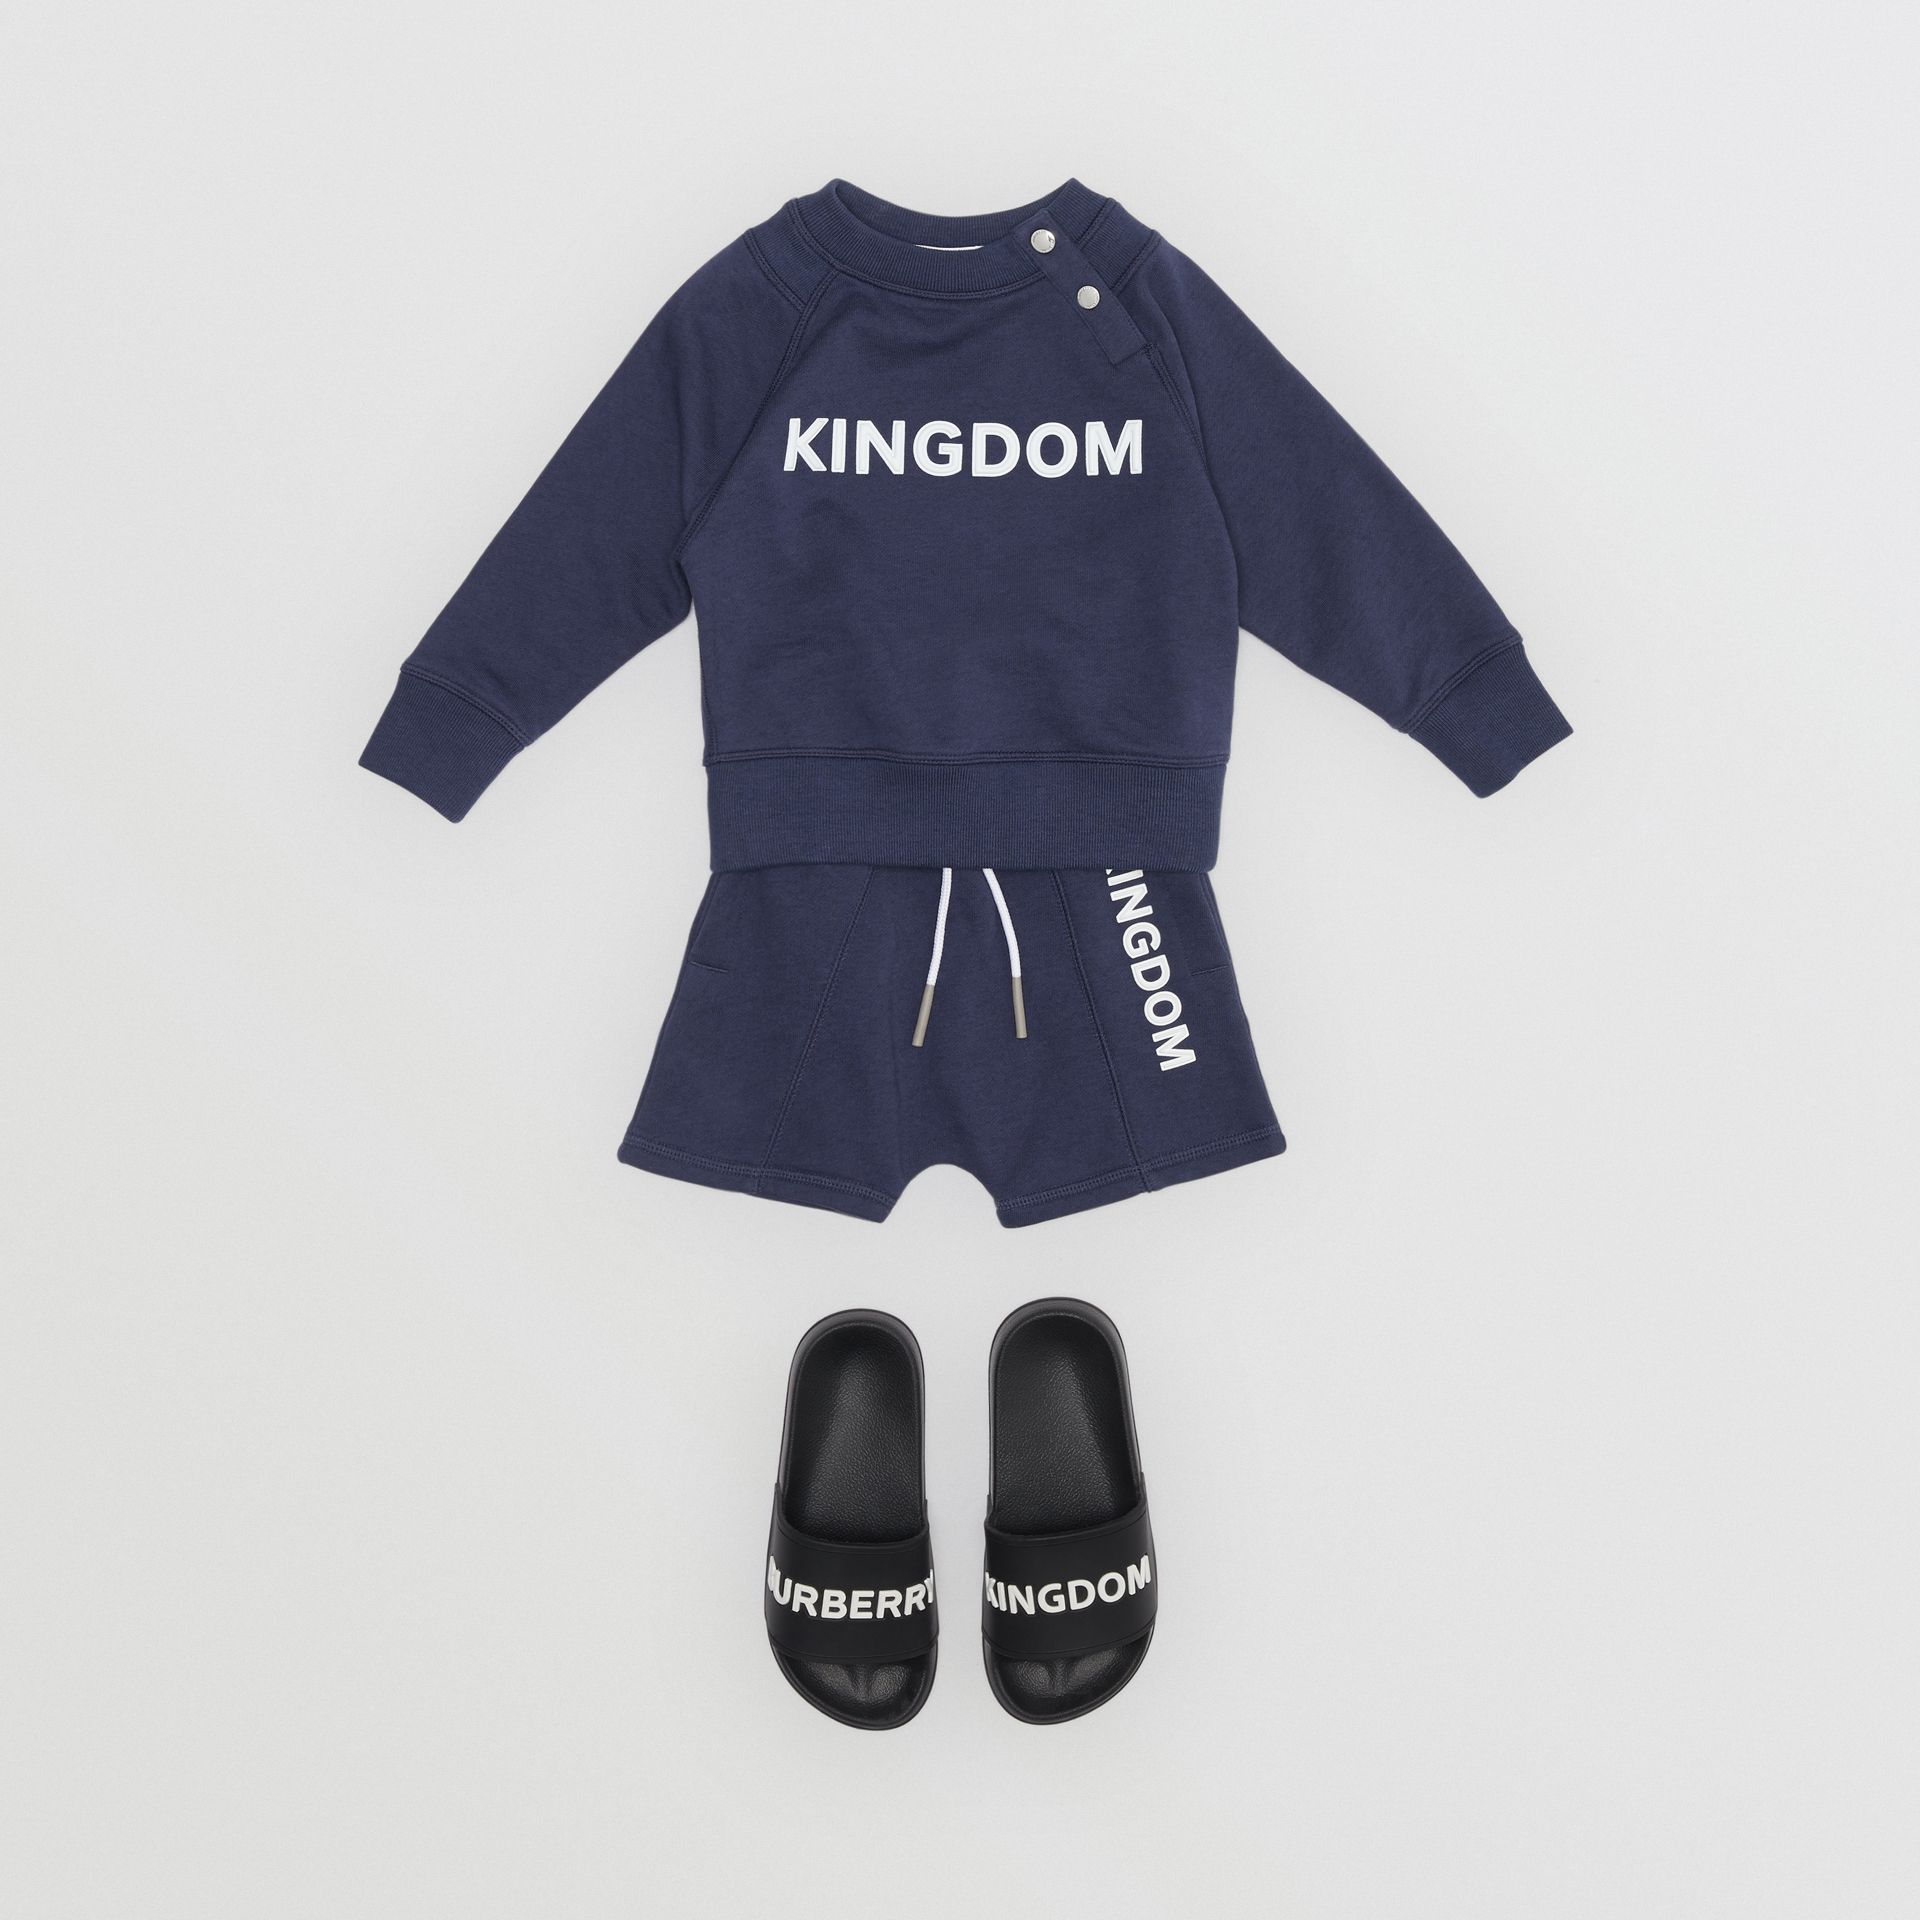 Sweat-shirt en coton Kingdom (Camaïeu De Bleus Ardoise) - Enfant | Burberry - photo de la galerie 2